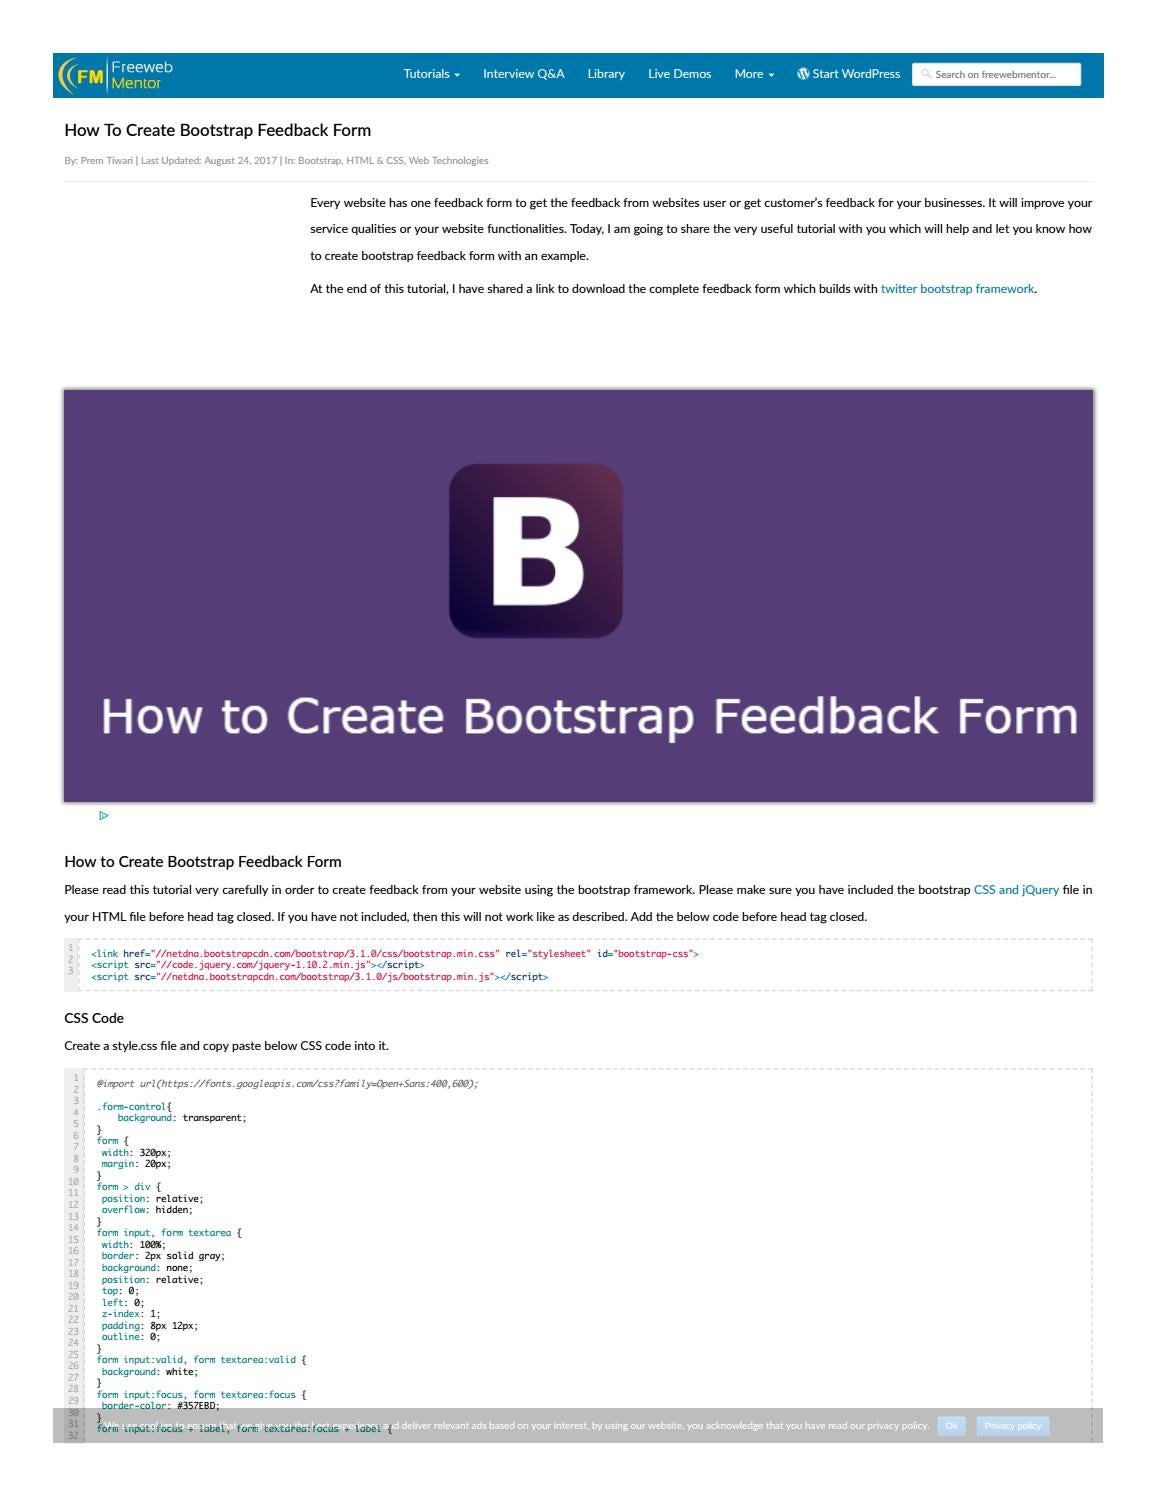 How To Create Bootstrap Feedback Form - Freewebmentor